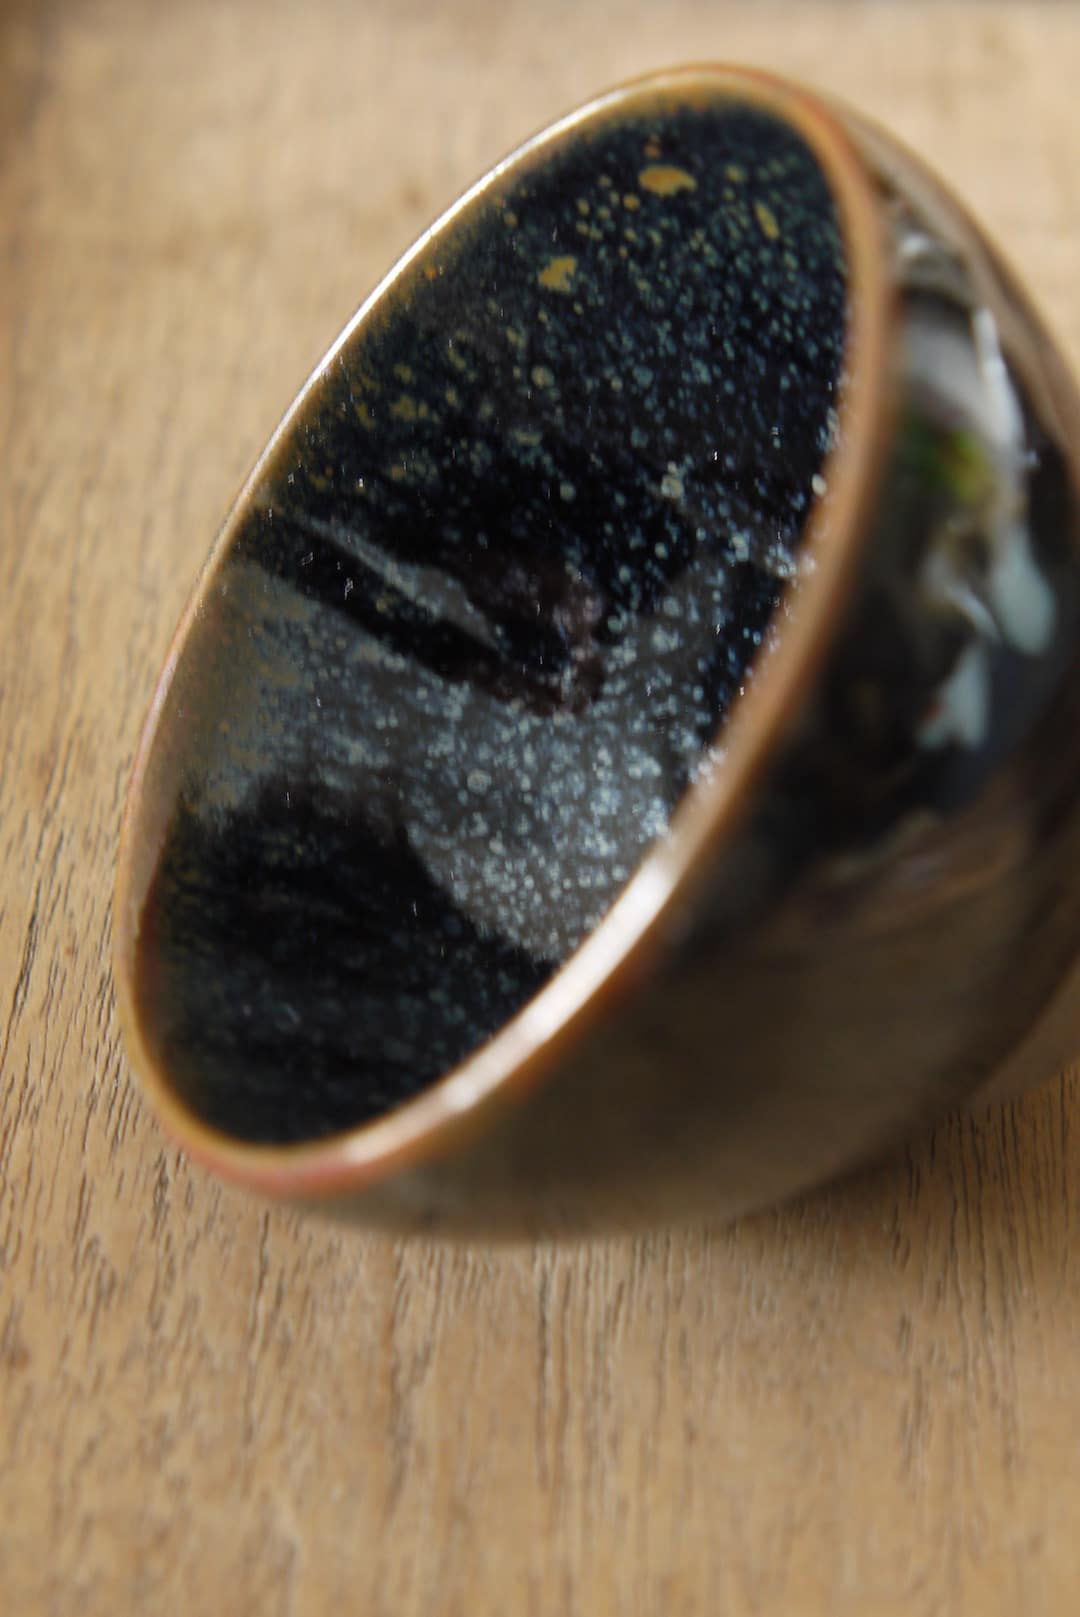 Japan Style Black Oil Spot Tenmoku Jian Ware Teacup|Best Ceramics